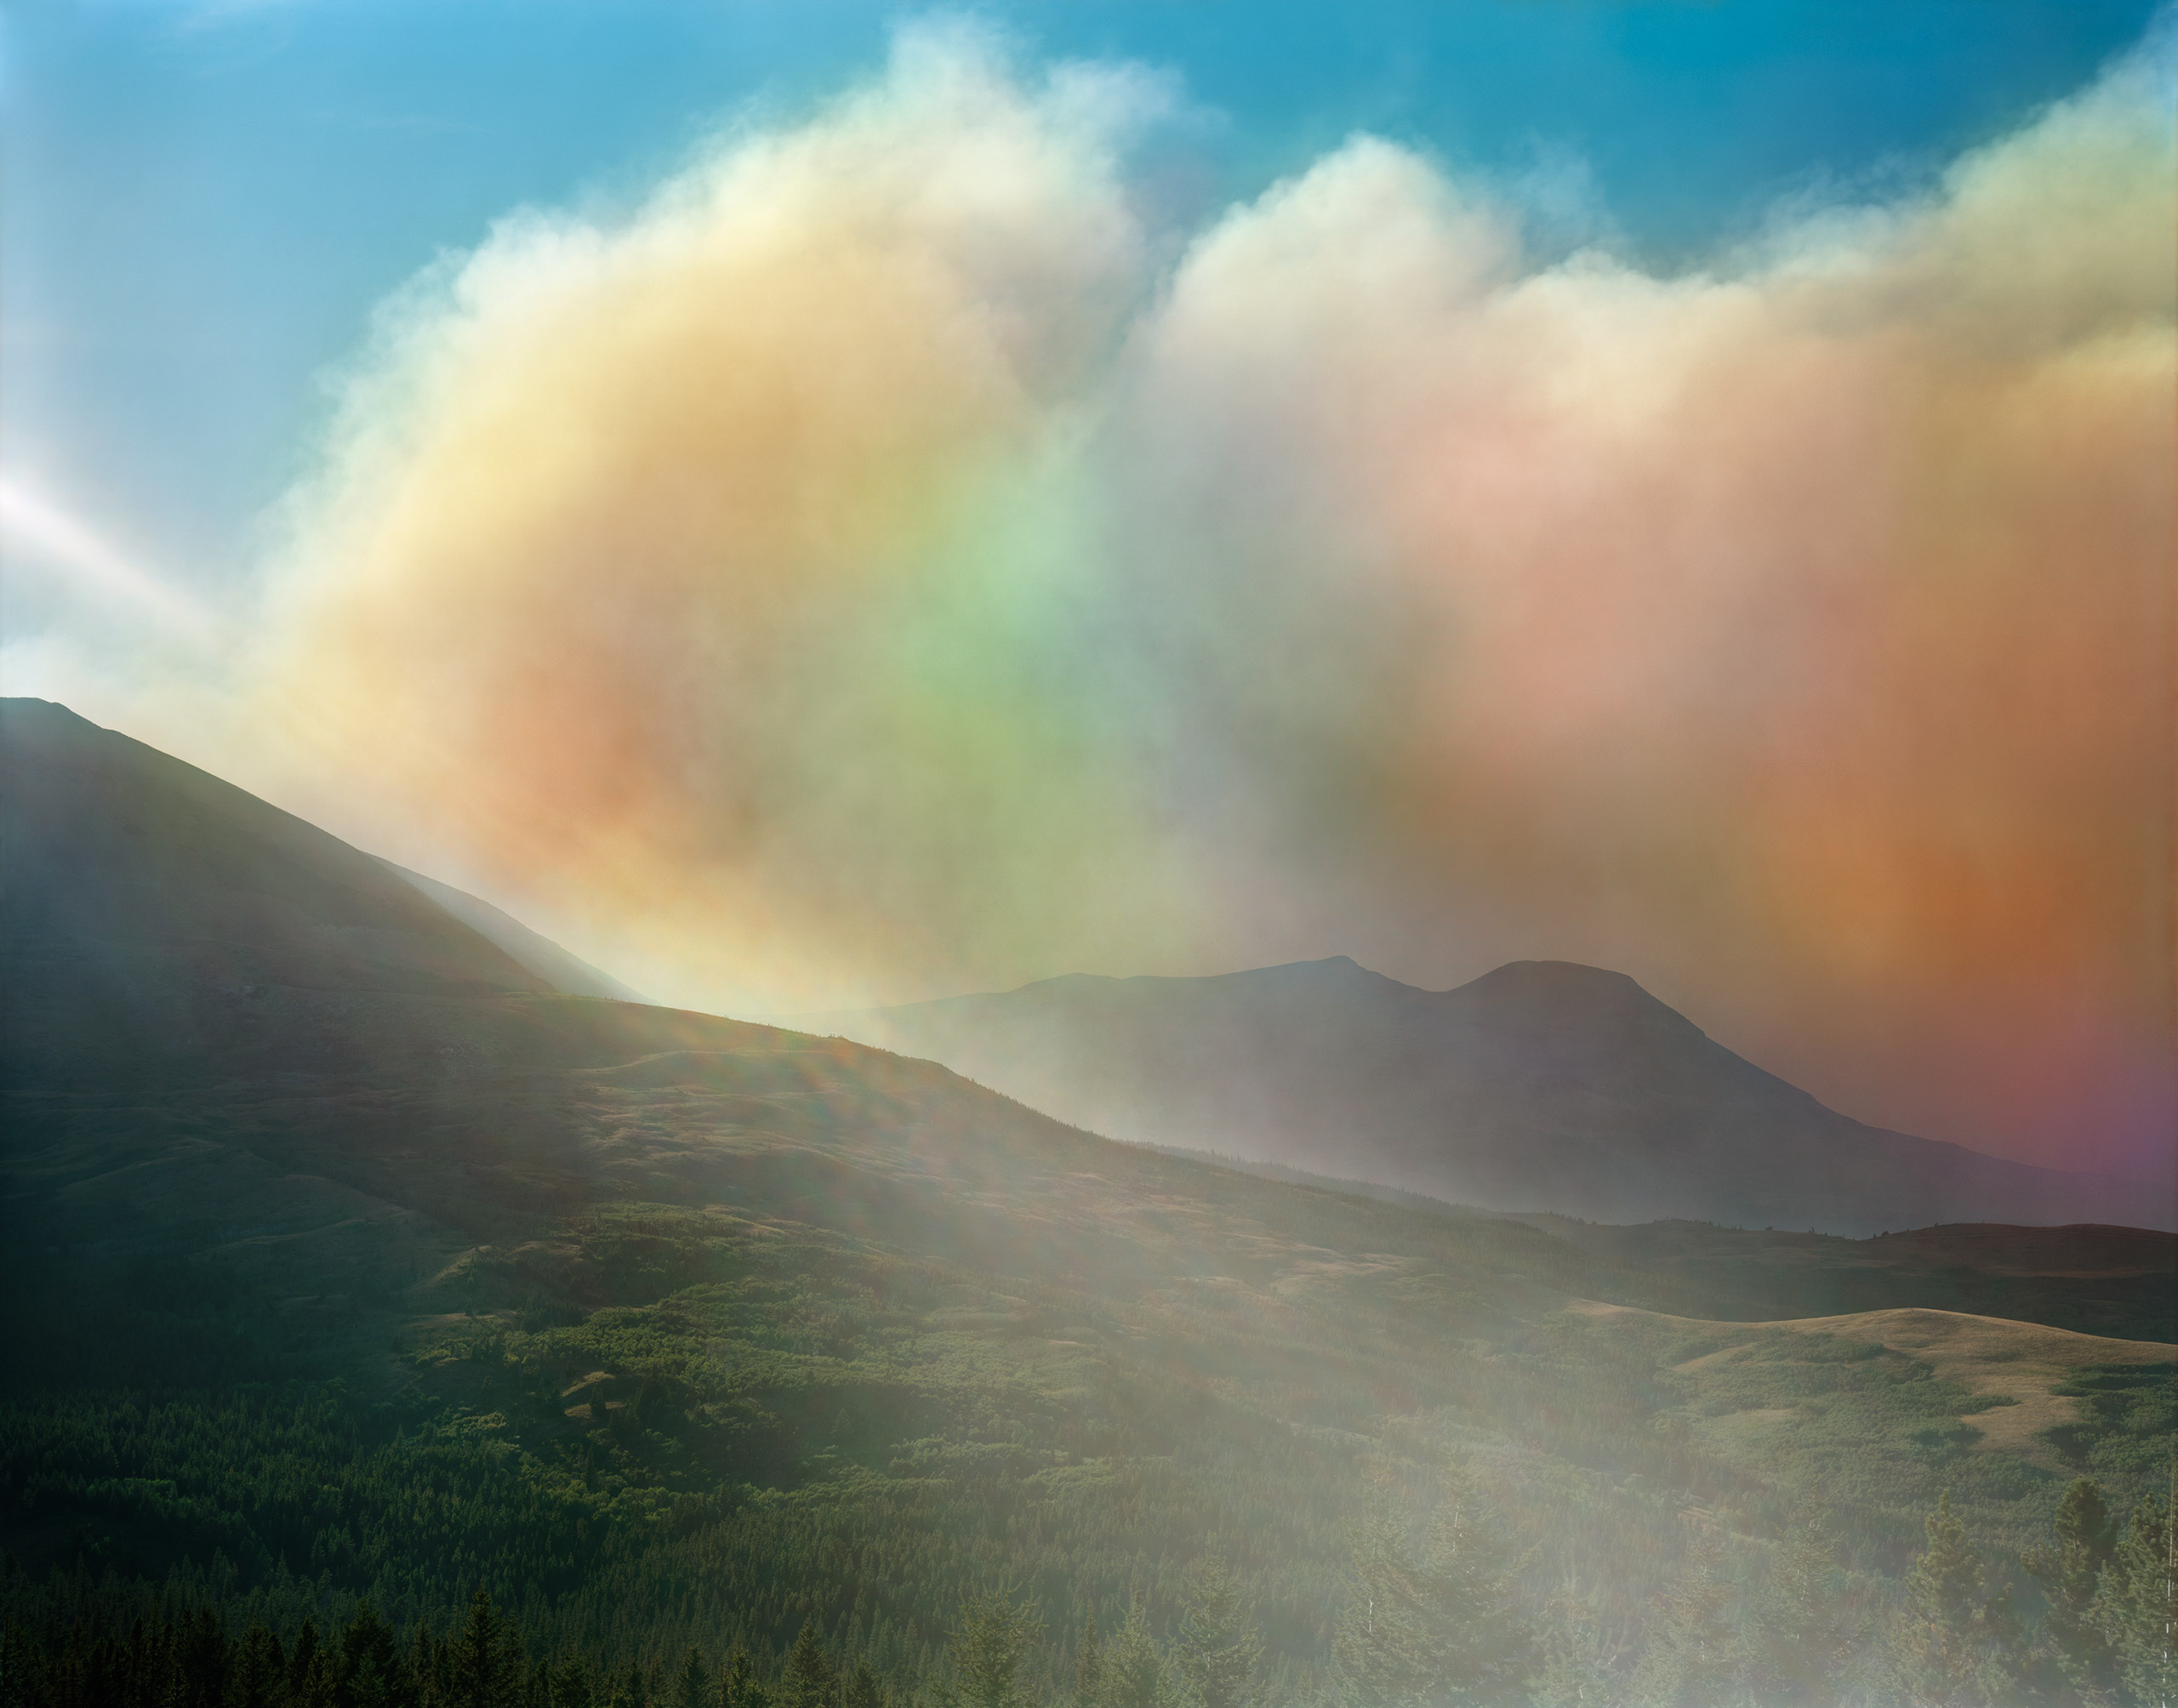 Wildfire in Glacier National Park, St. Mary, Montana, August 2015.